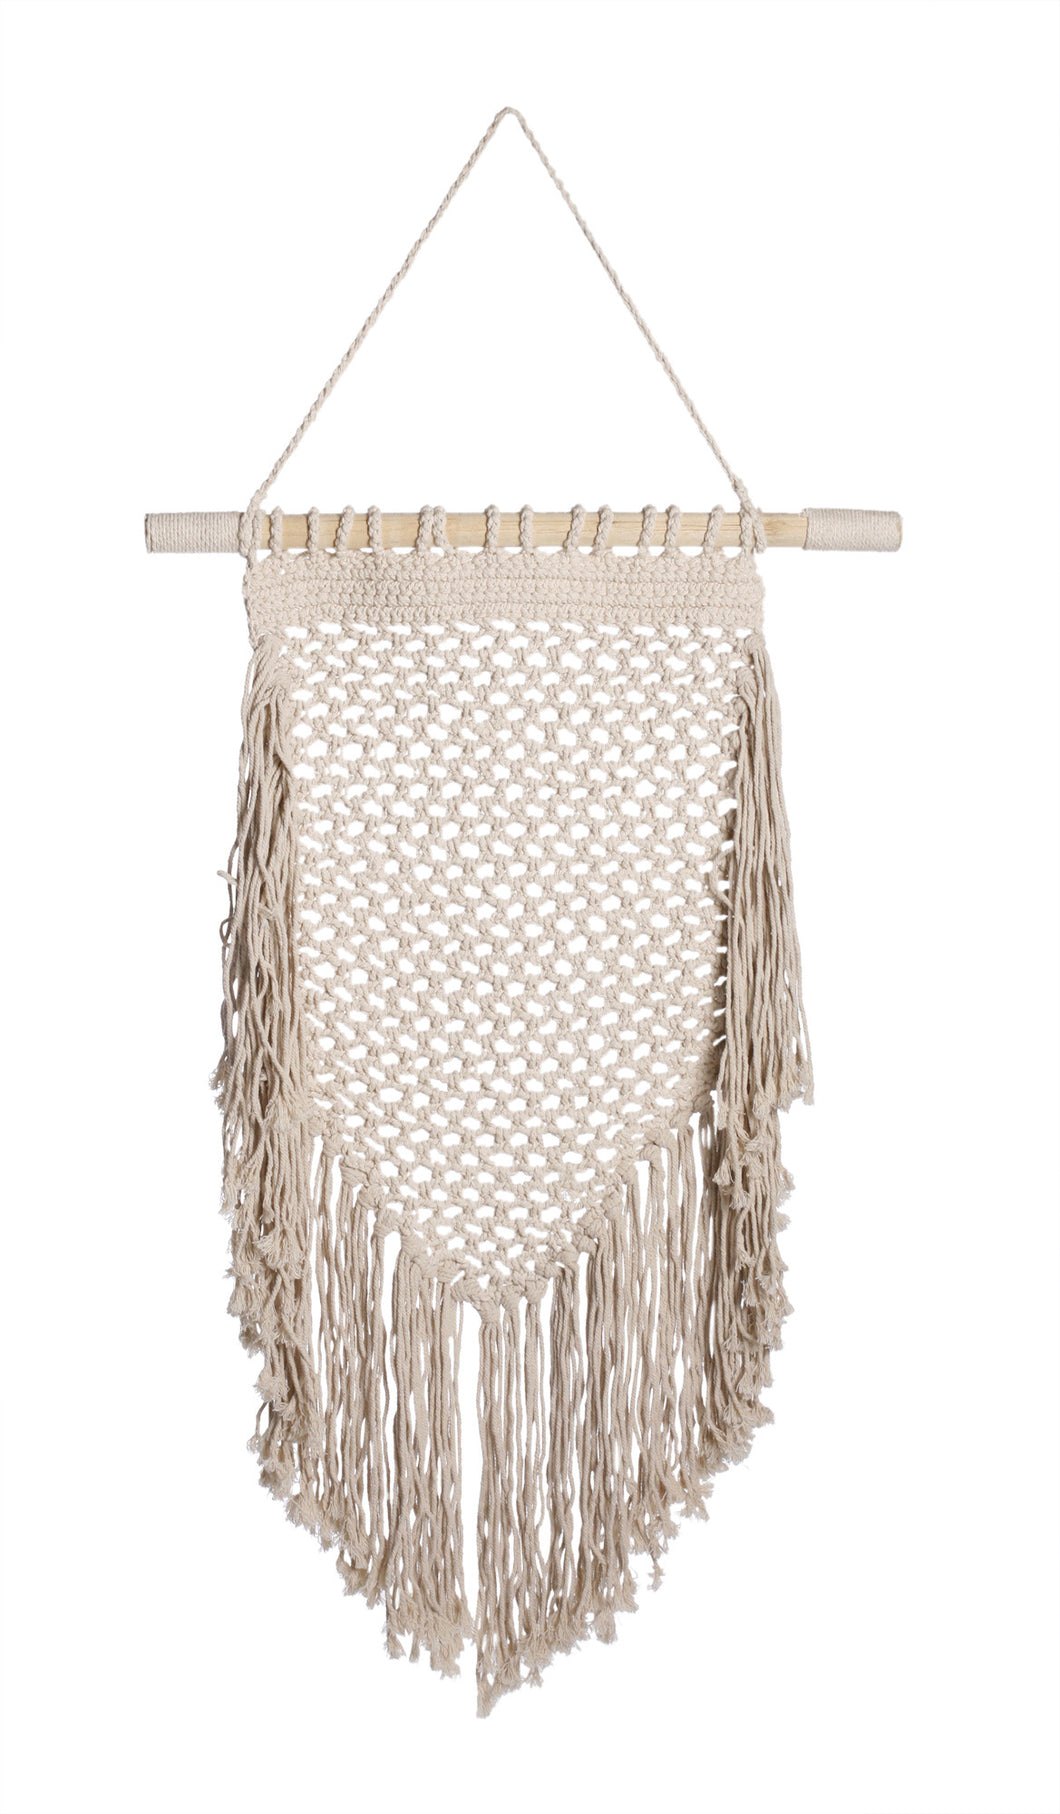 Medium Natural Macrame